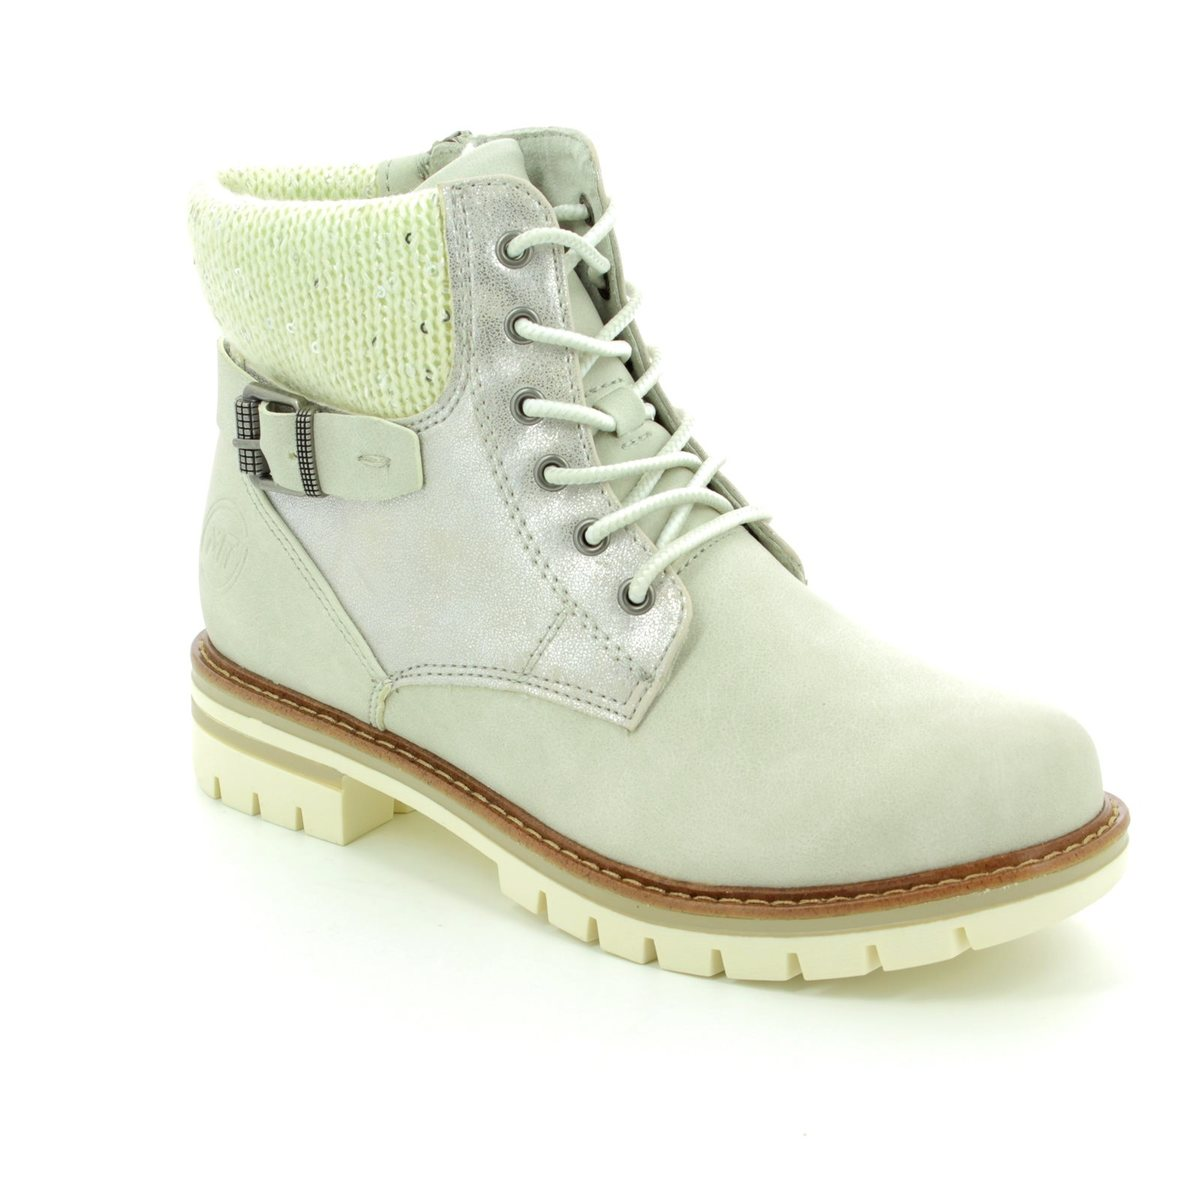 Shoes Marco Tozzi - a real German quality